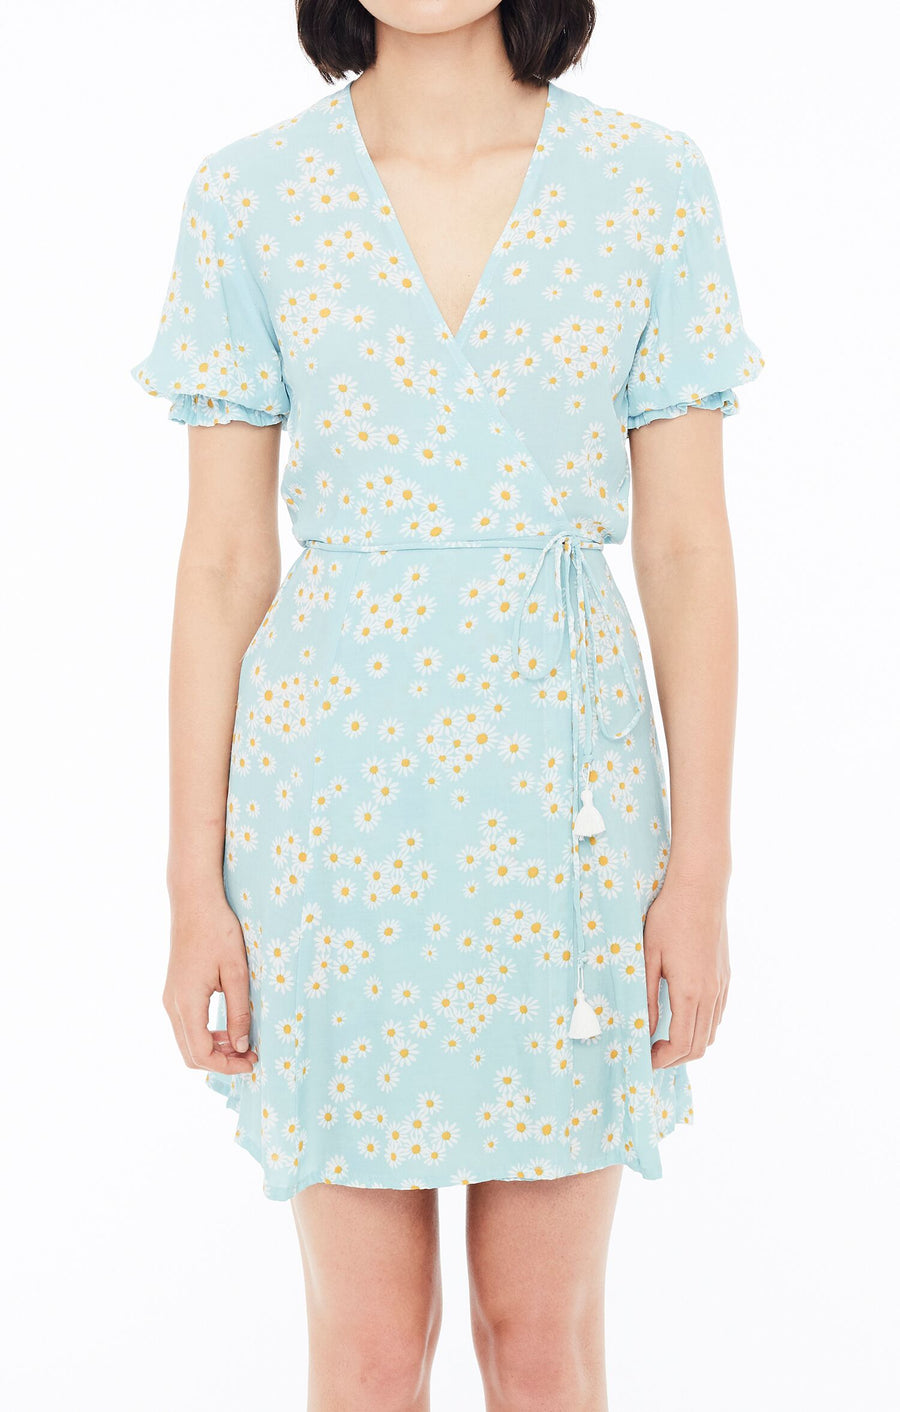 FAITHFULL THE BRAND - Mira Wrap Dress - Zhoe Floral